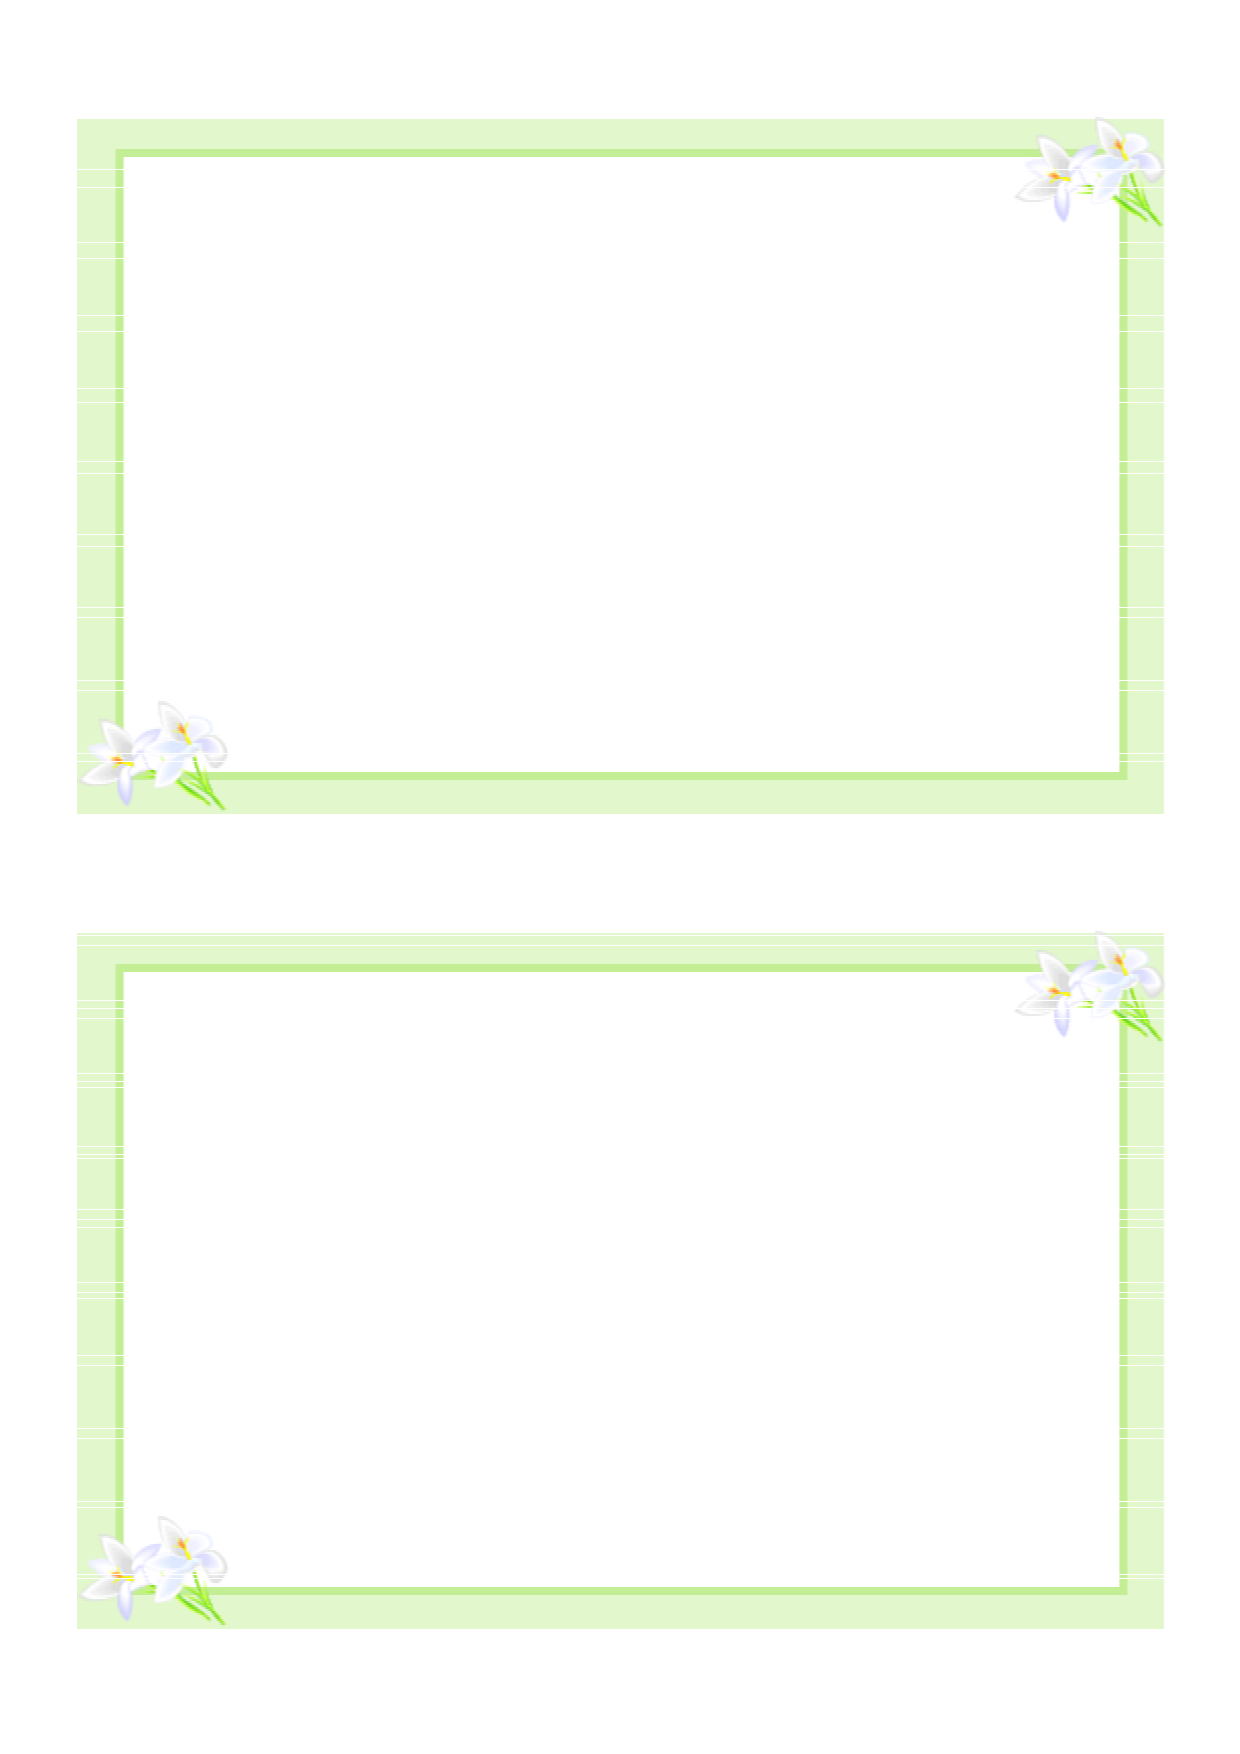 Pin By Robert Boeden On Thanx Free Business Card Templates Postcard Template Free Blank Card Template